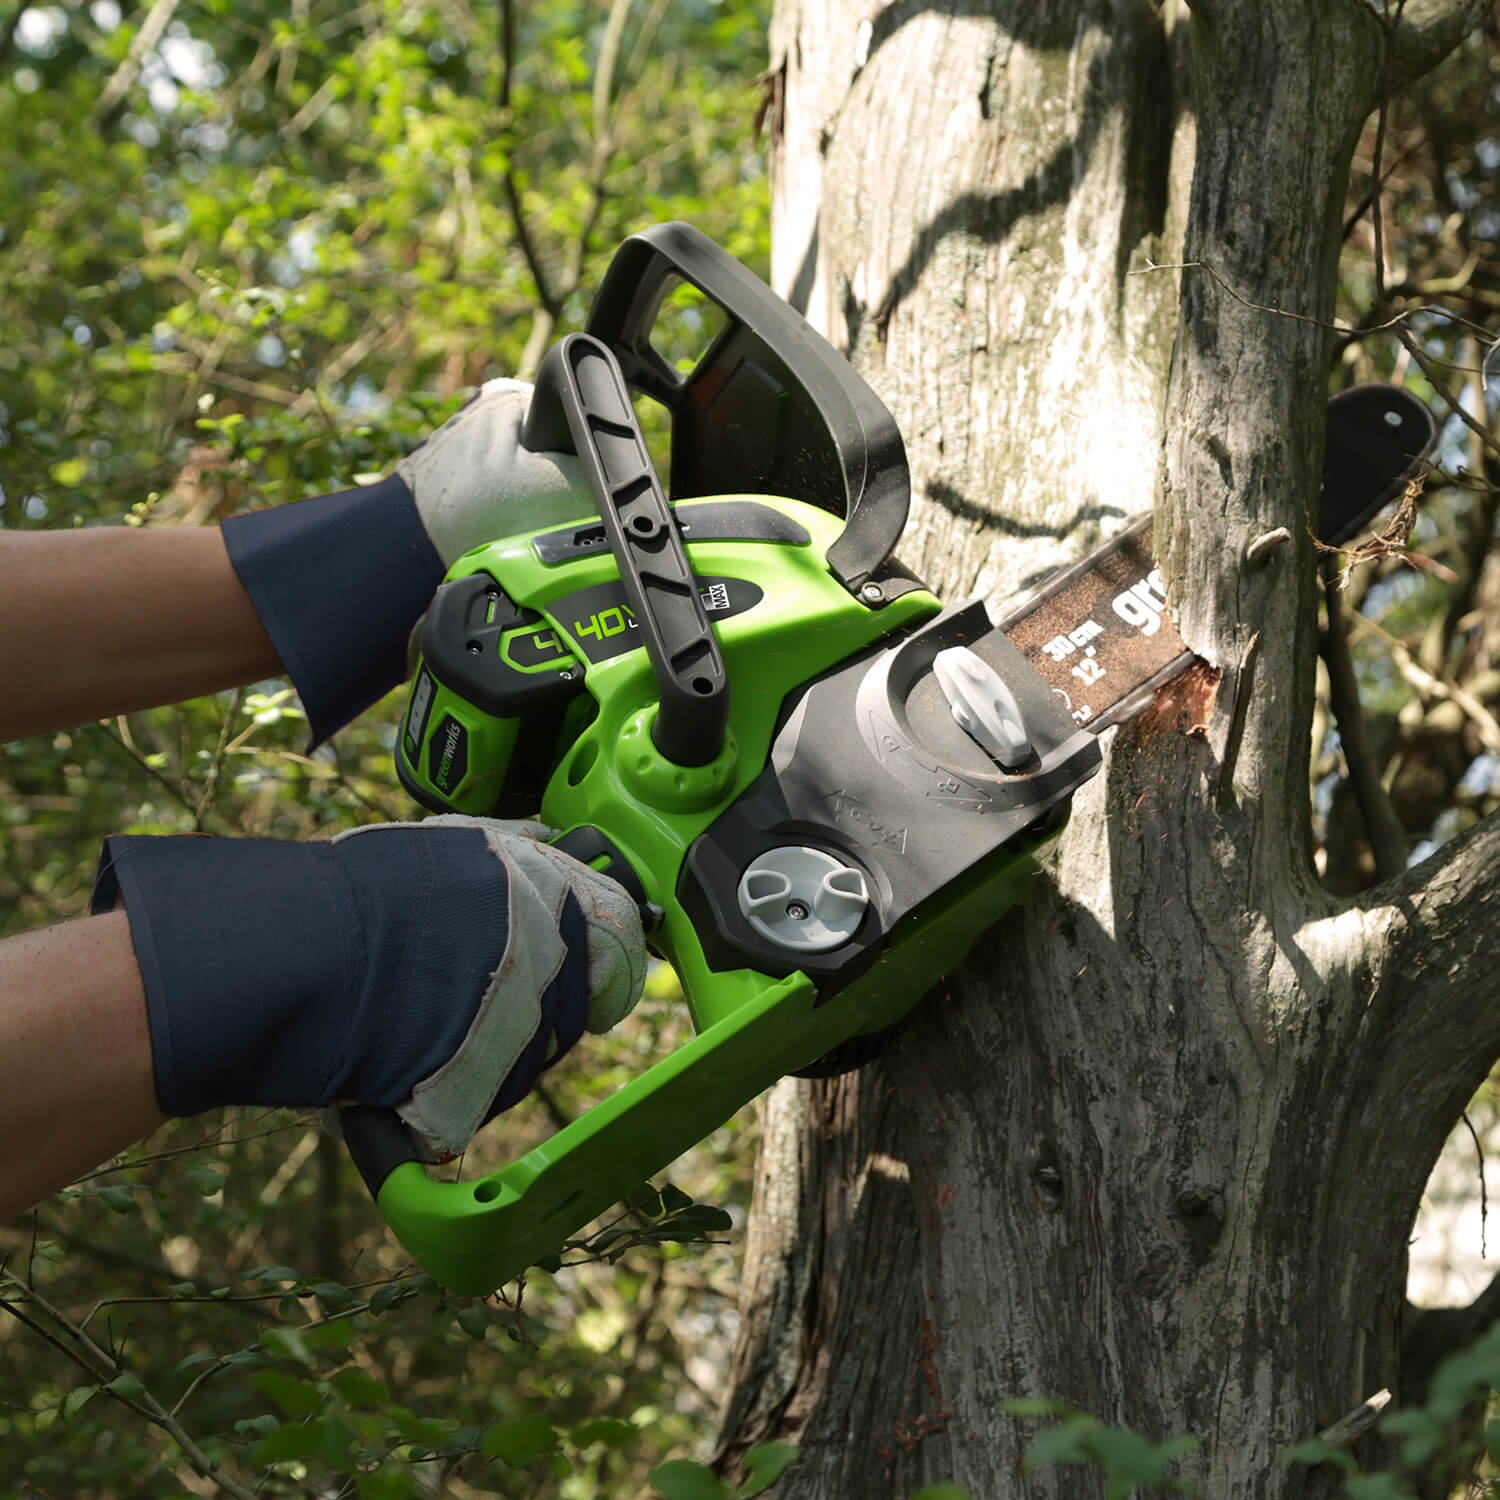 Greenworks 12-Inch 40V Cordless Chainsaw, Battery Not Included 20292 by Greenworks